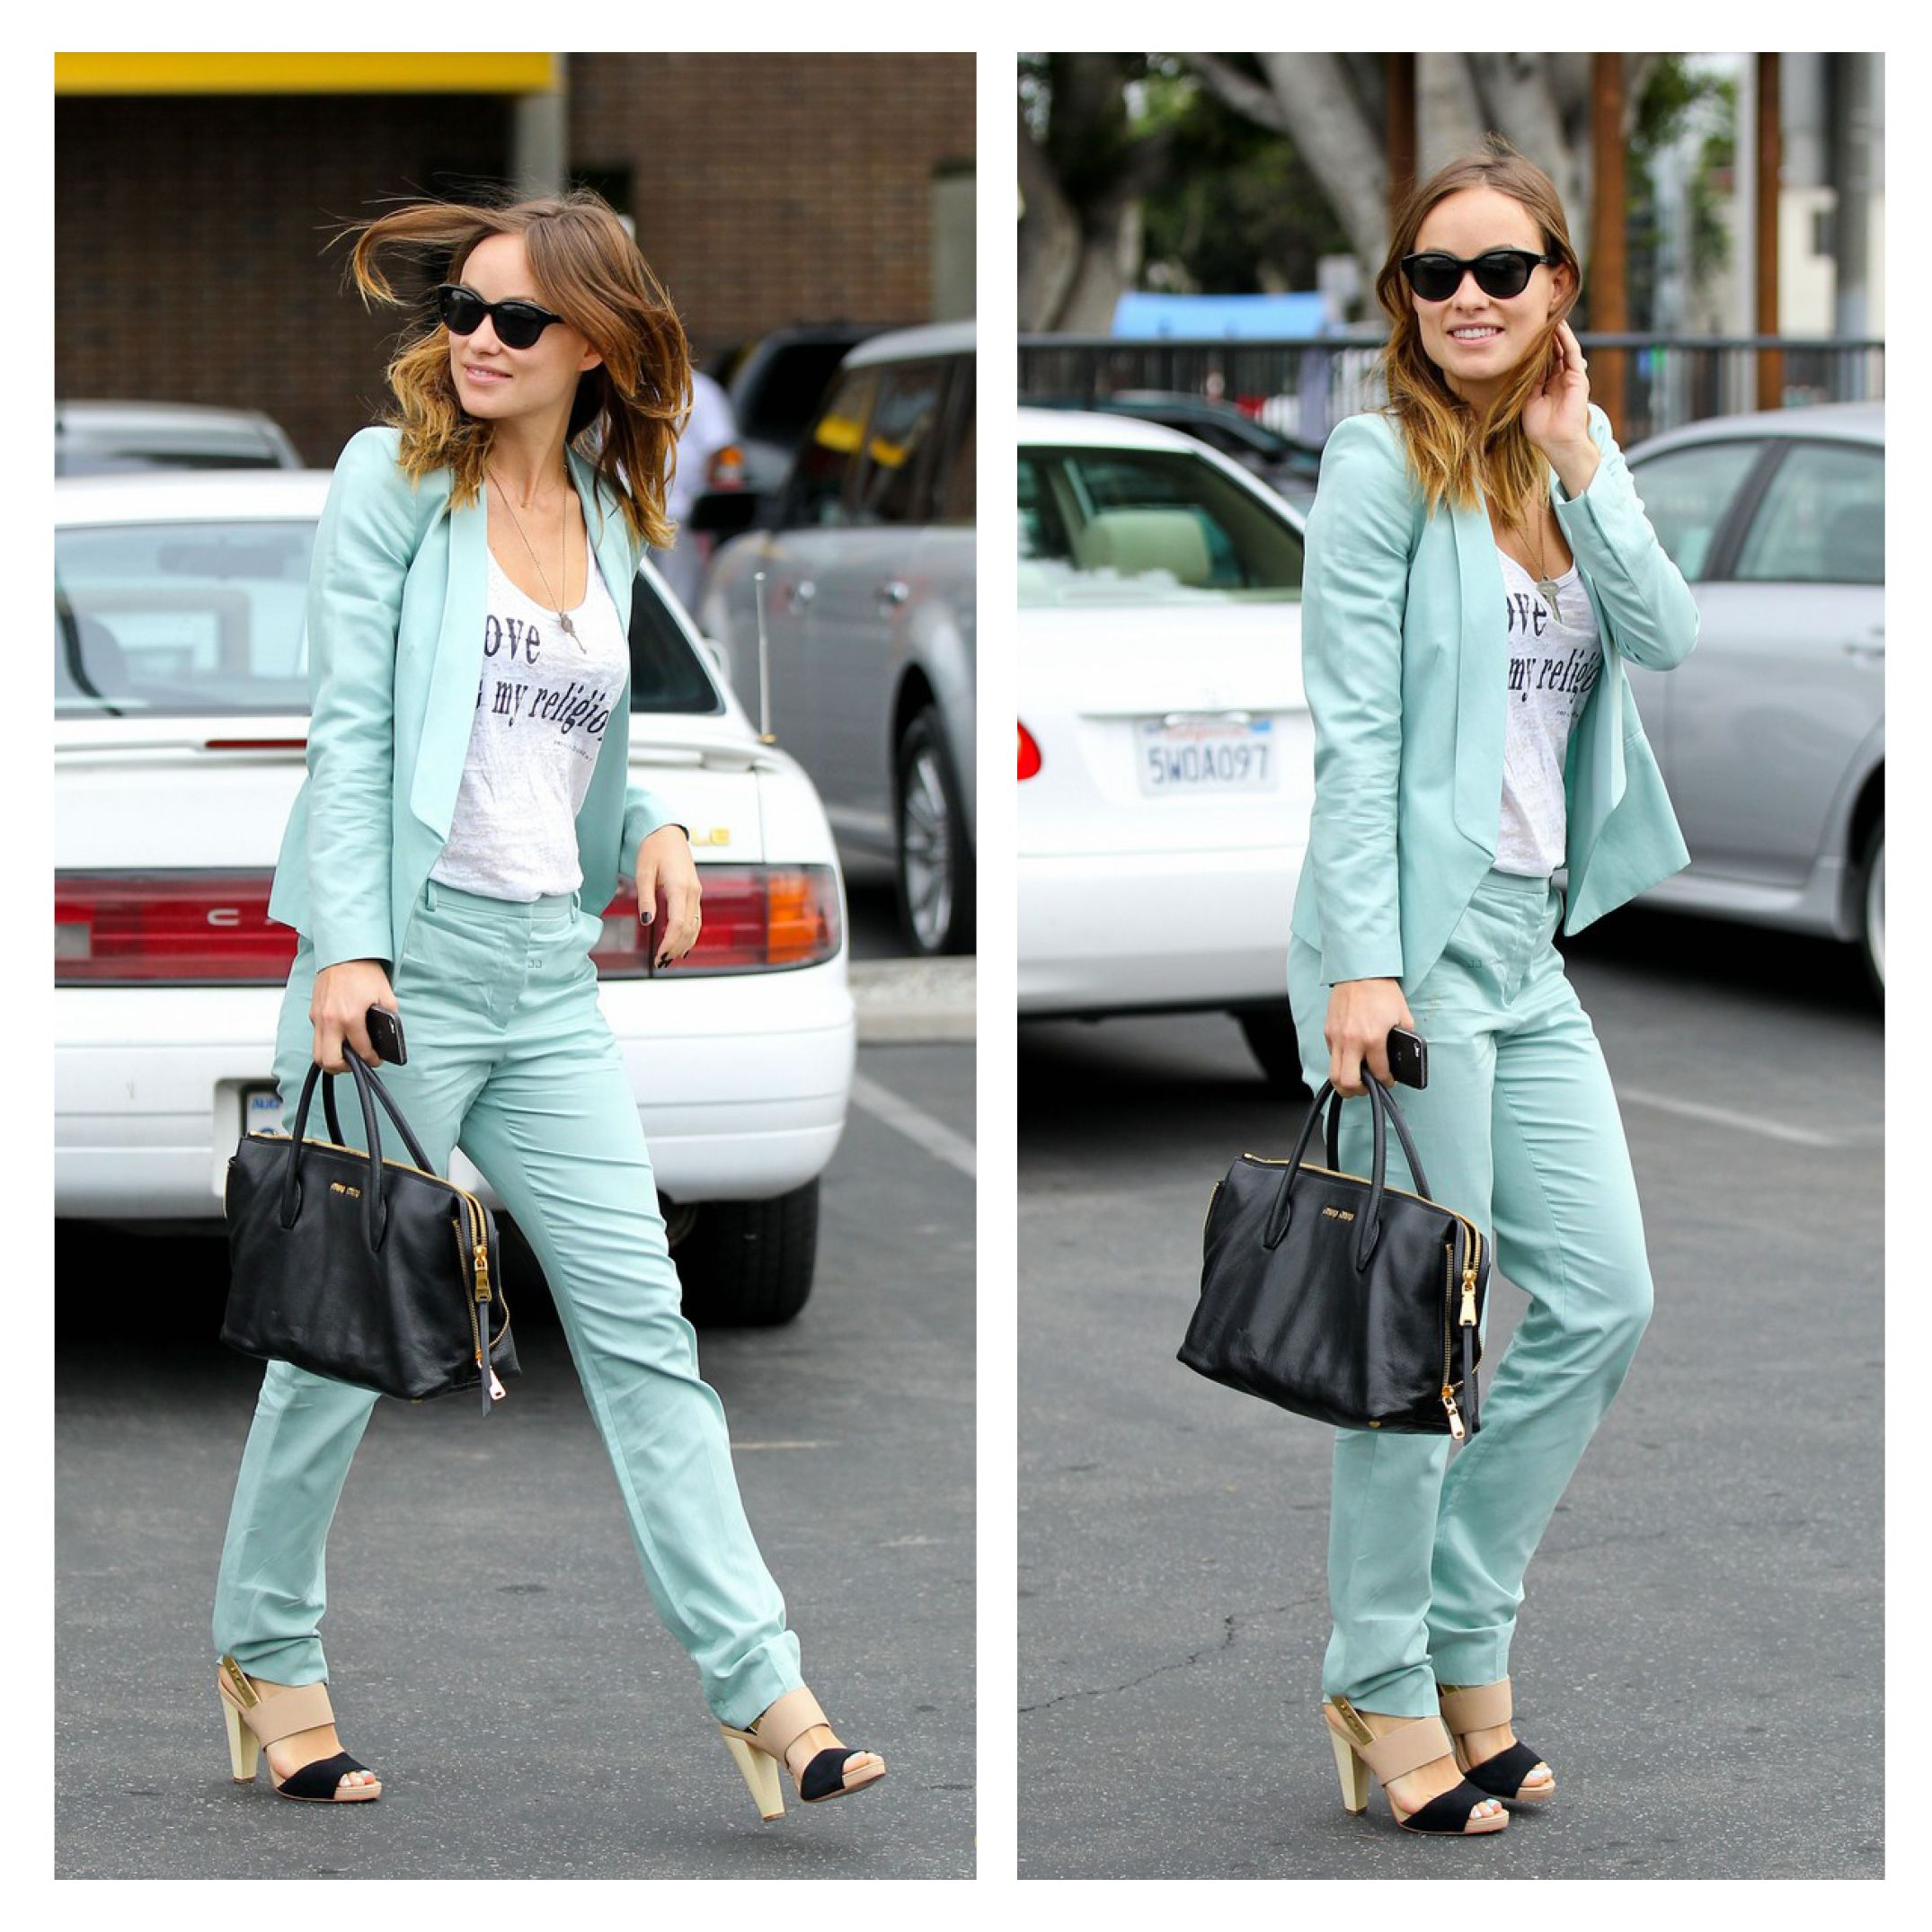 The lovely Olivia Wilde spotted in her Coye Nokes shoes while out in Los Angeles!